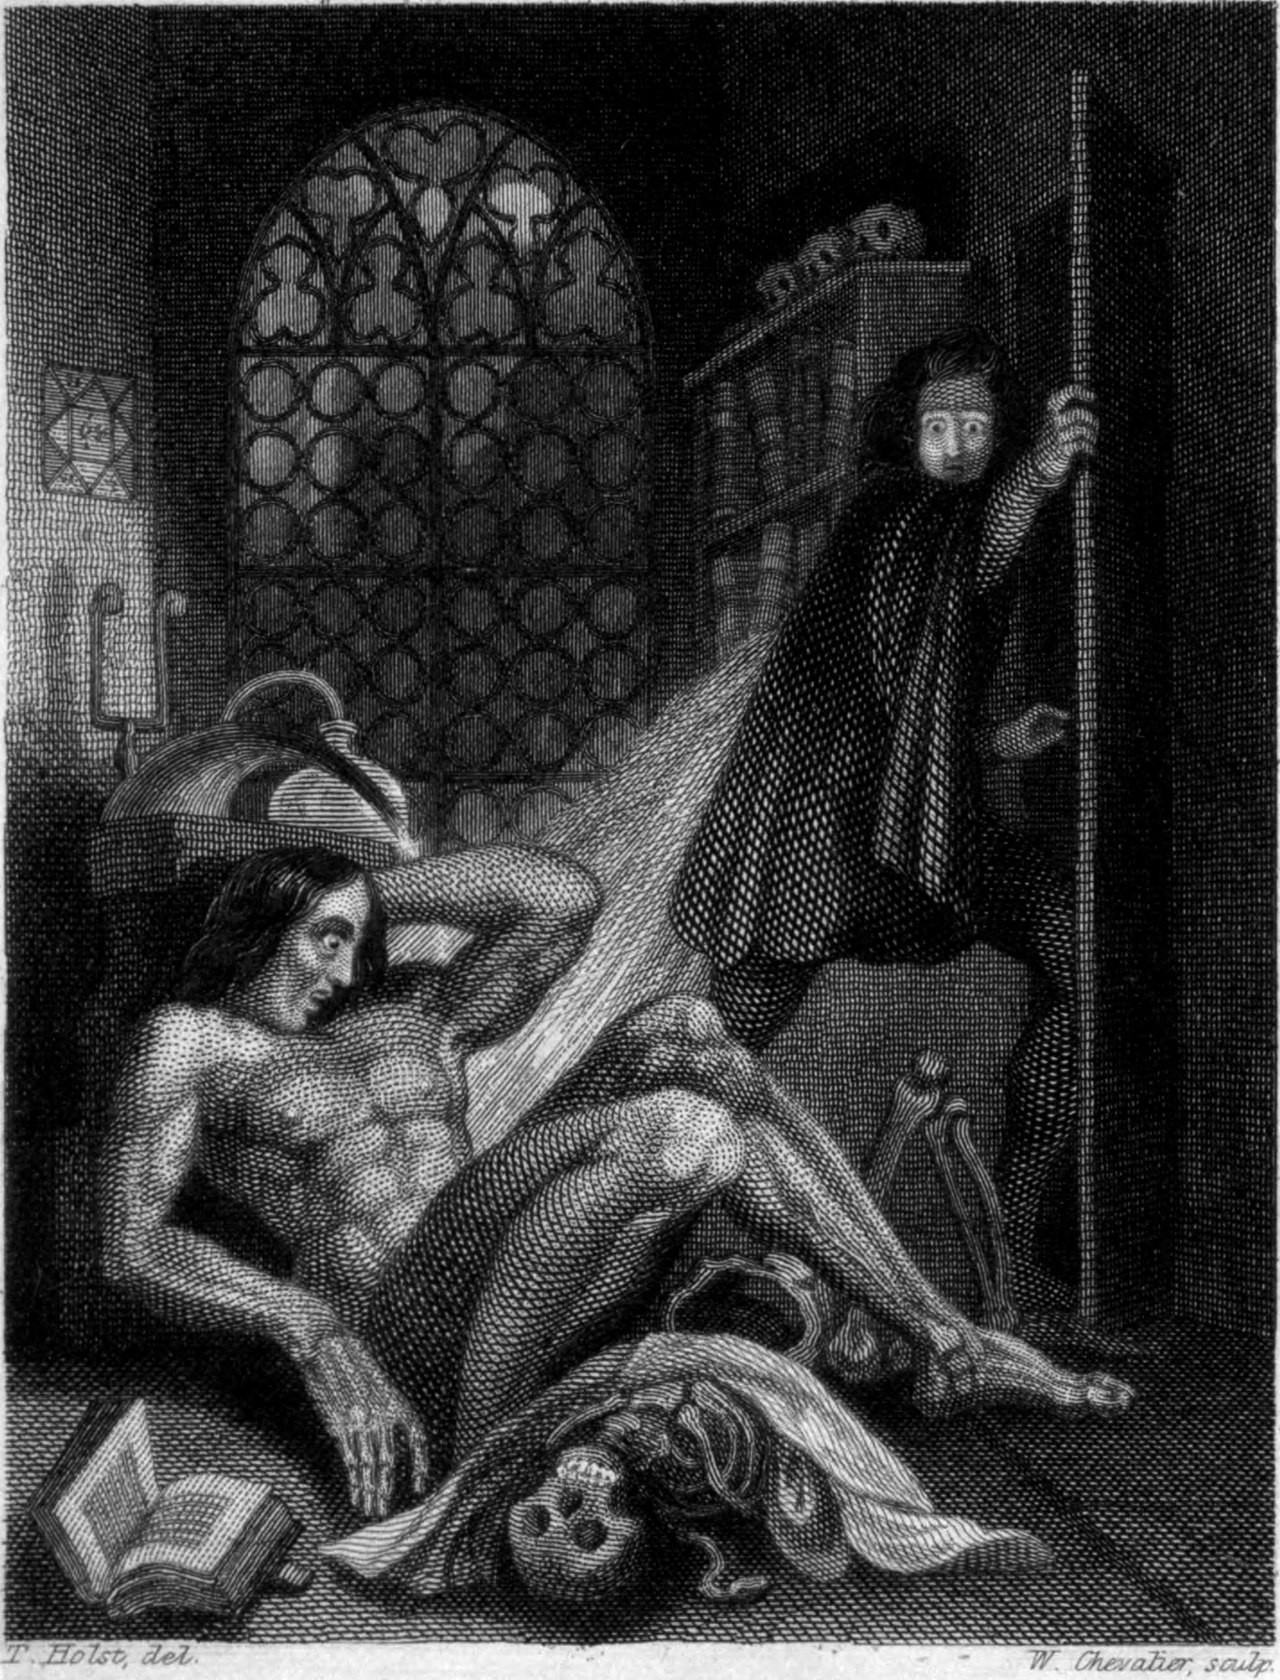 An etching of Victor Frankenstein looking horrified at his monster